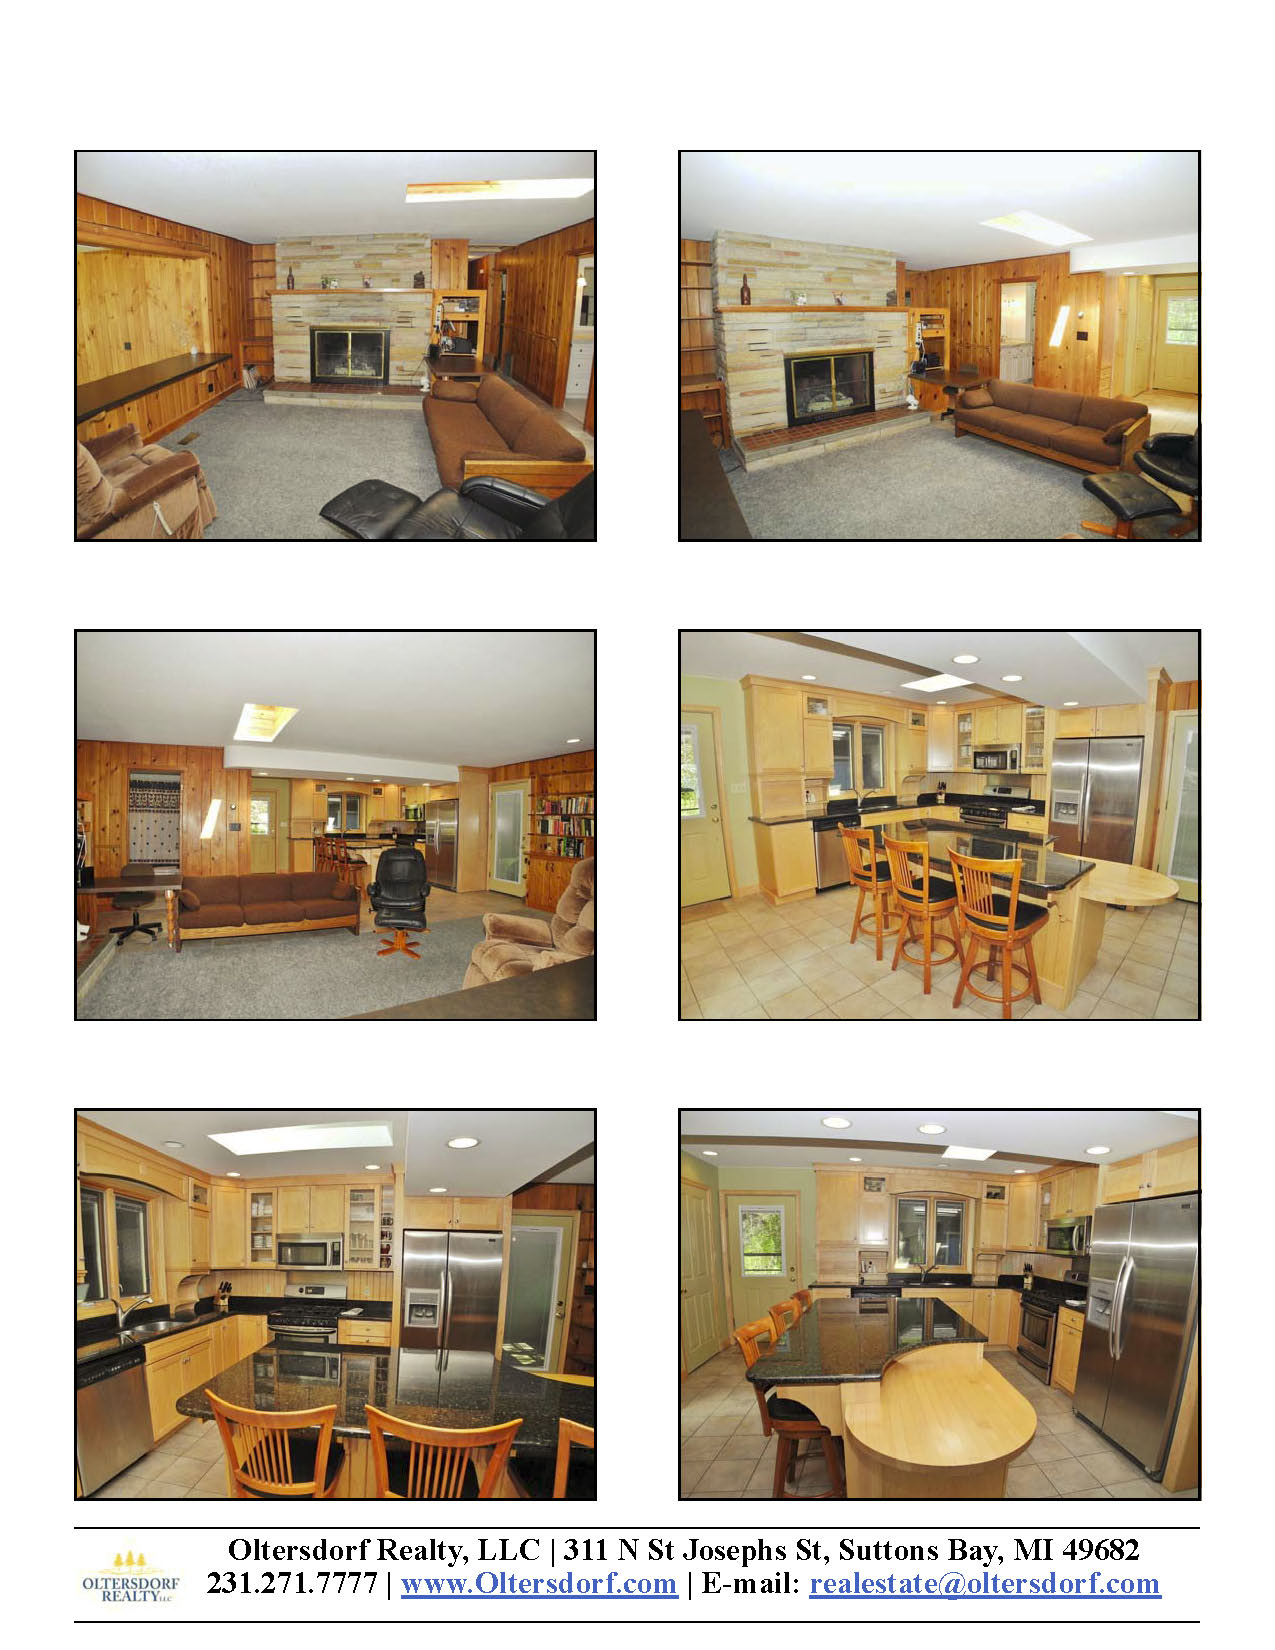 8164 S Lakeview Road, Traverse City, MI – Ranch Home & 100' on Lake Leelanau - For Sale by Oltersdorf Realty LLC - Marketing Packet (5).jpg